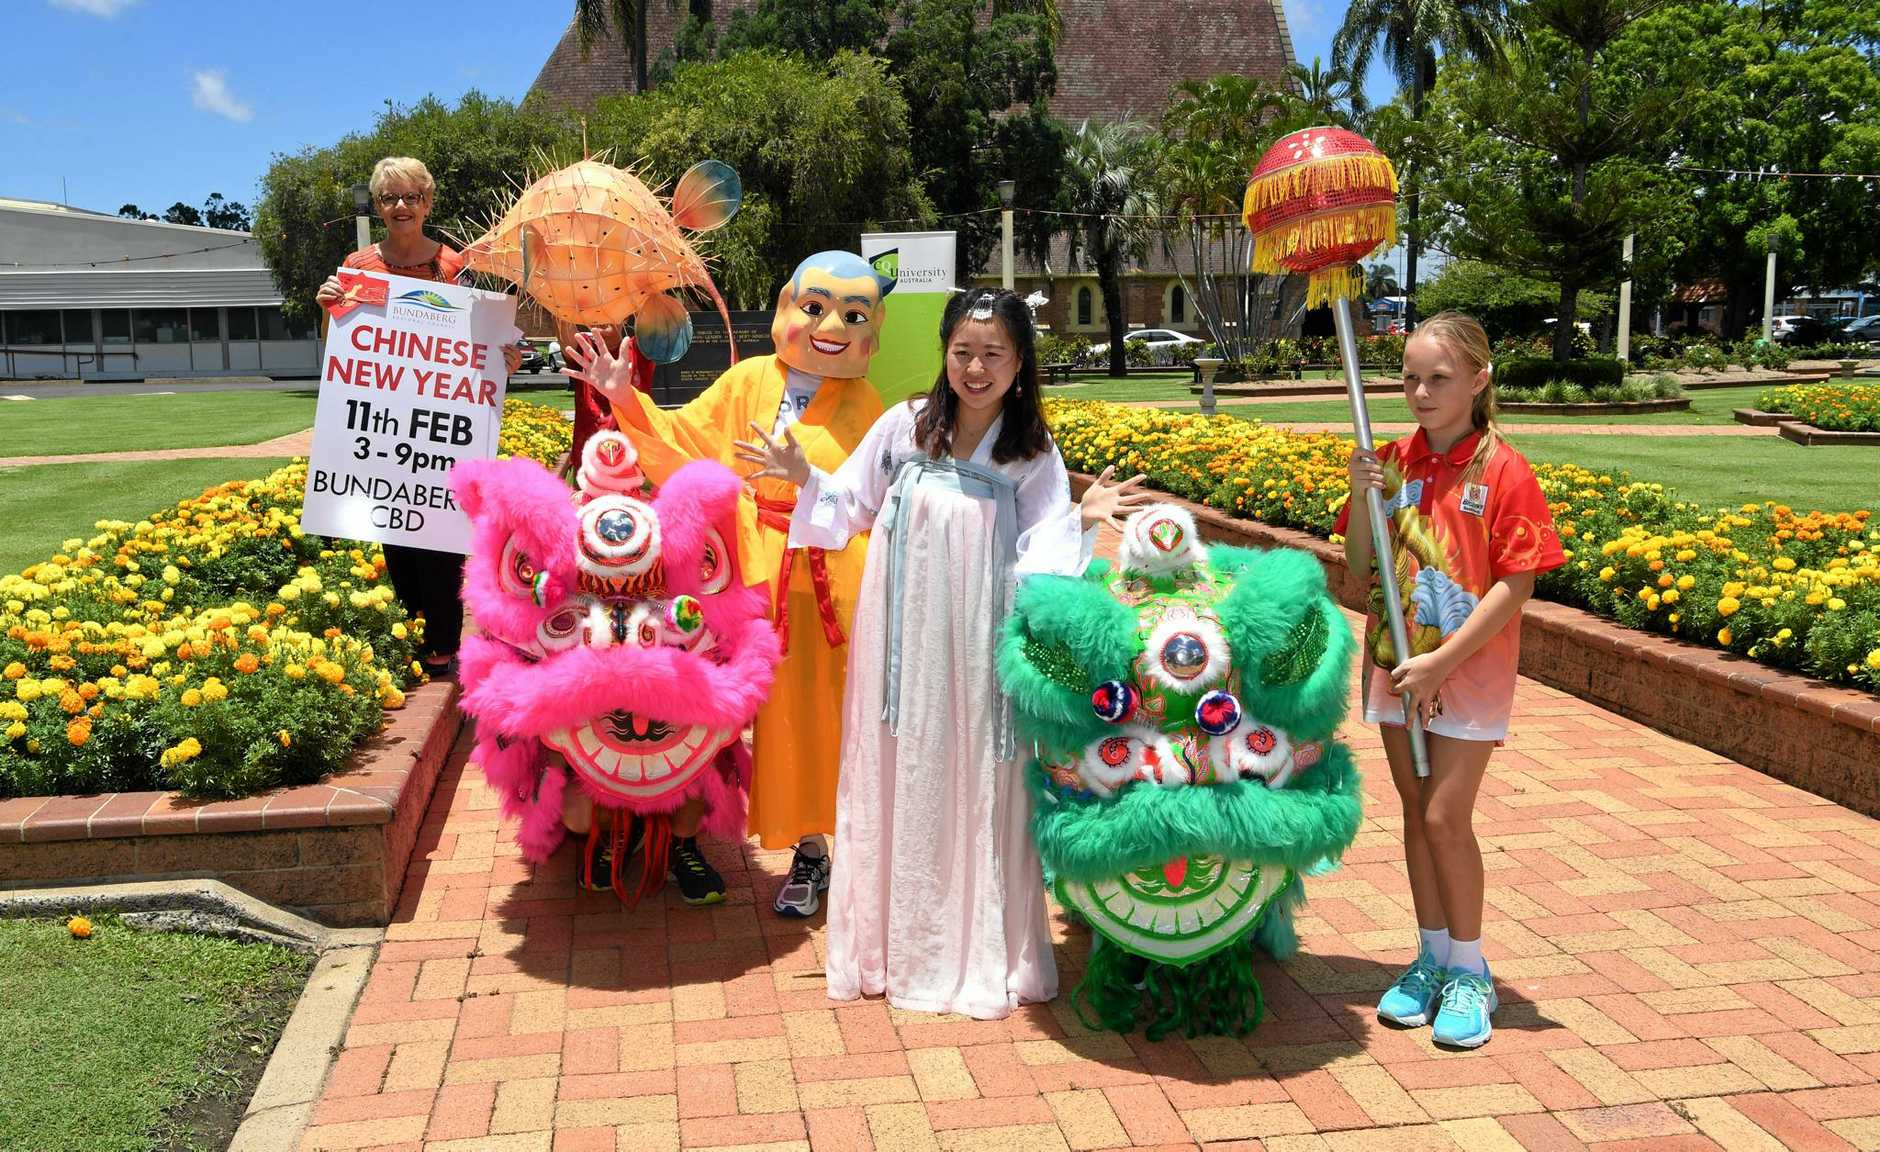 YEAR OF THE ROOSTER: Councillor Judy Peters, Dylan Carter as Buddha), Tina Yuanyuan, Lilly Matthews and the PCYC Blazers dragons are gearing up for Chinese New Year.